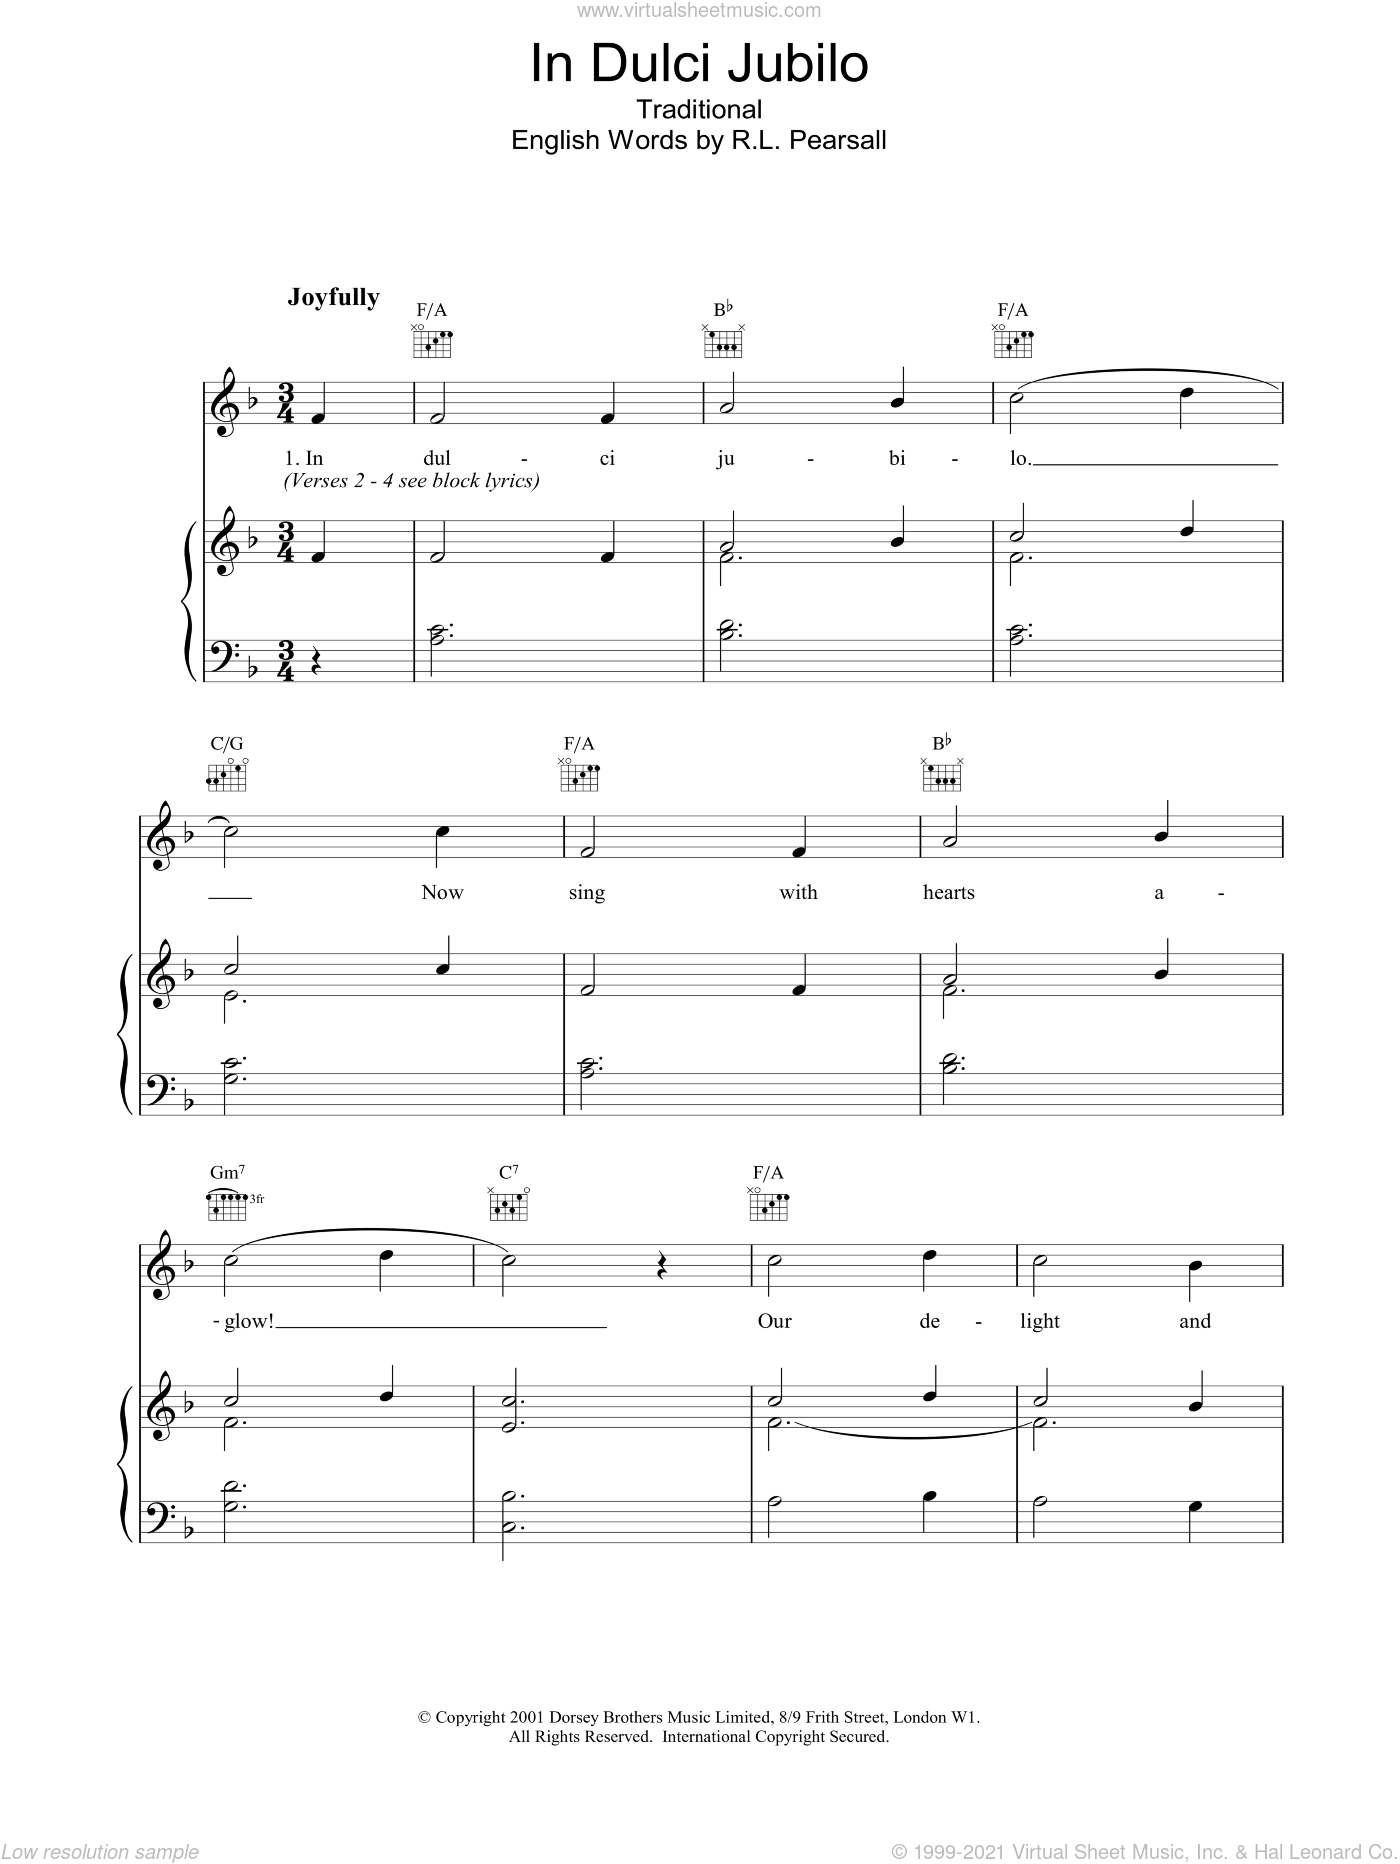 In Dulce Jubilo sheet music for voice, piano or guitar. Score Image Preview.